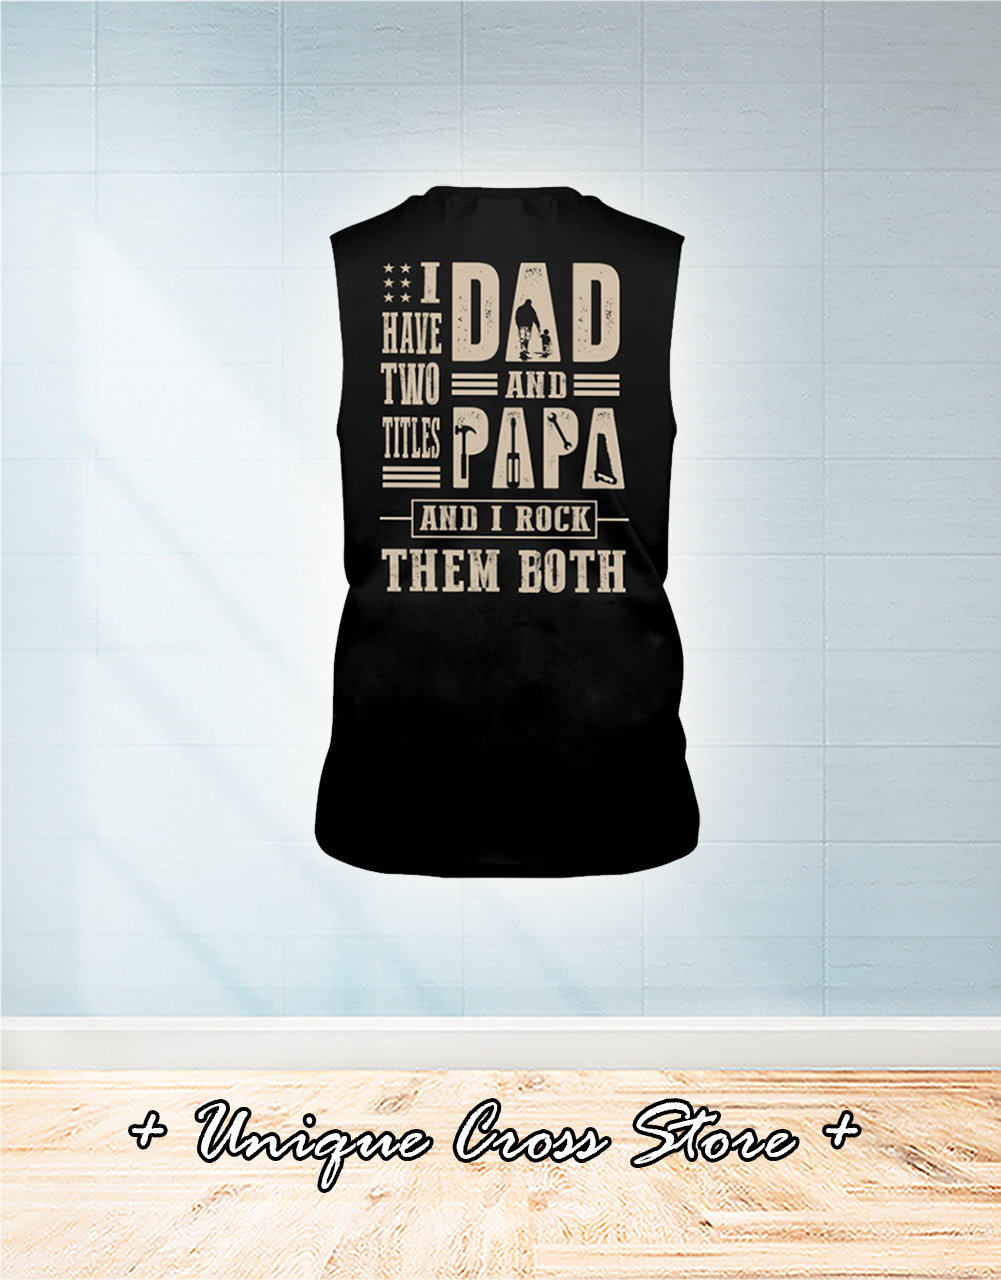 Carpenter Mechanic I Have Titles Two Dad And Papa And I Rock Them Both tank